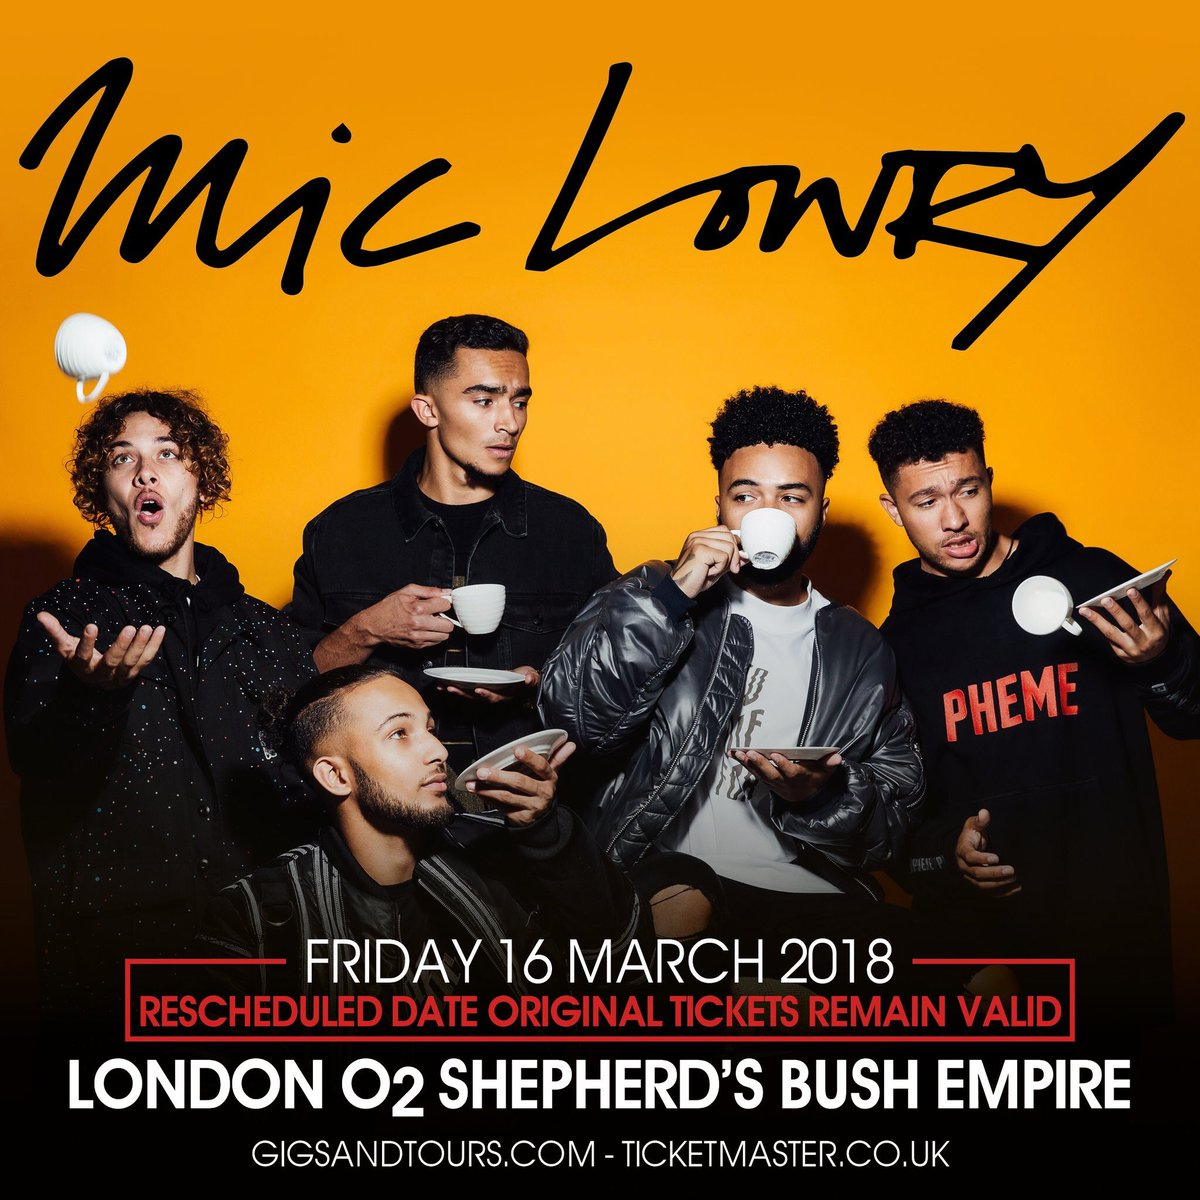 16th of March 🙌🏽 cannot wait to see my favs ❤️👌🏽 who's coming?? KToj53qs